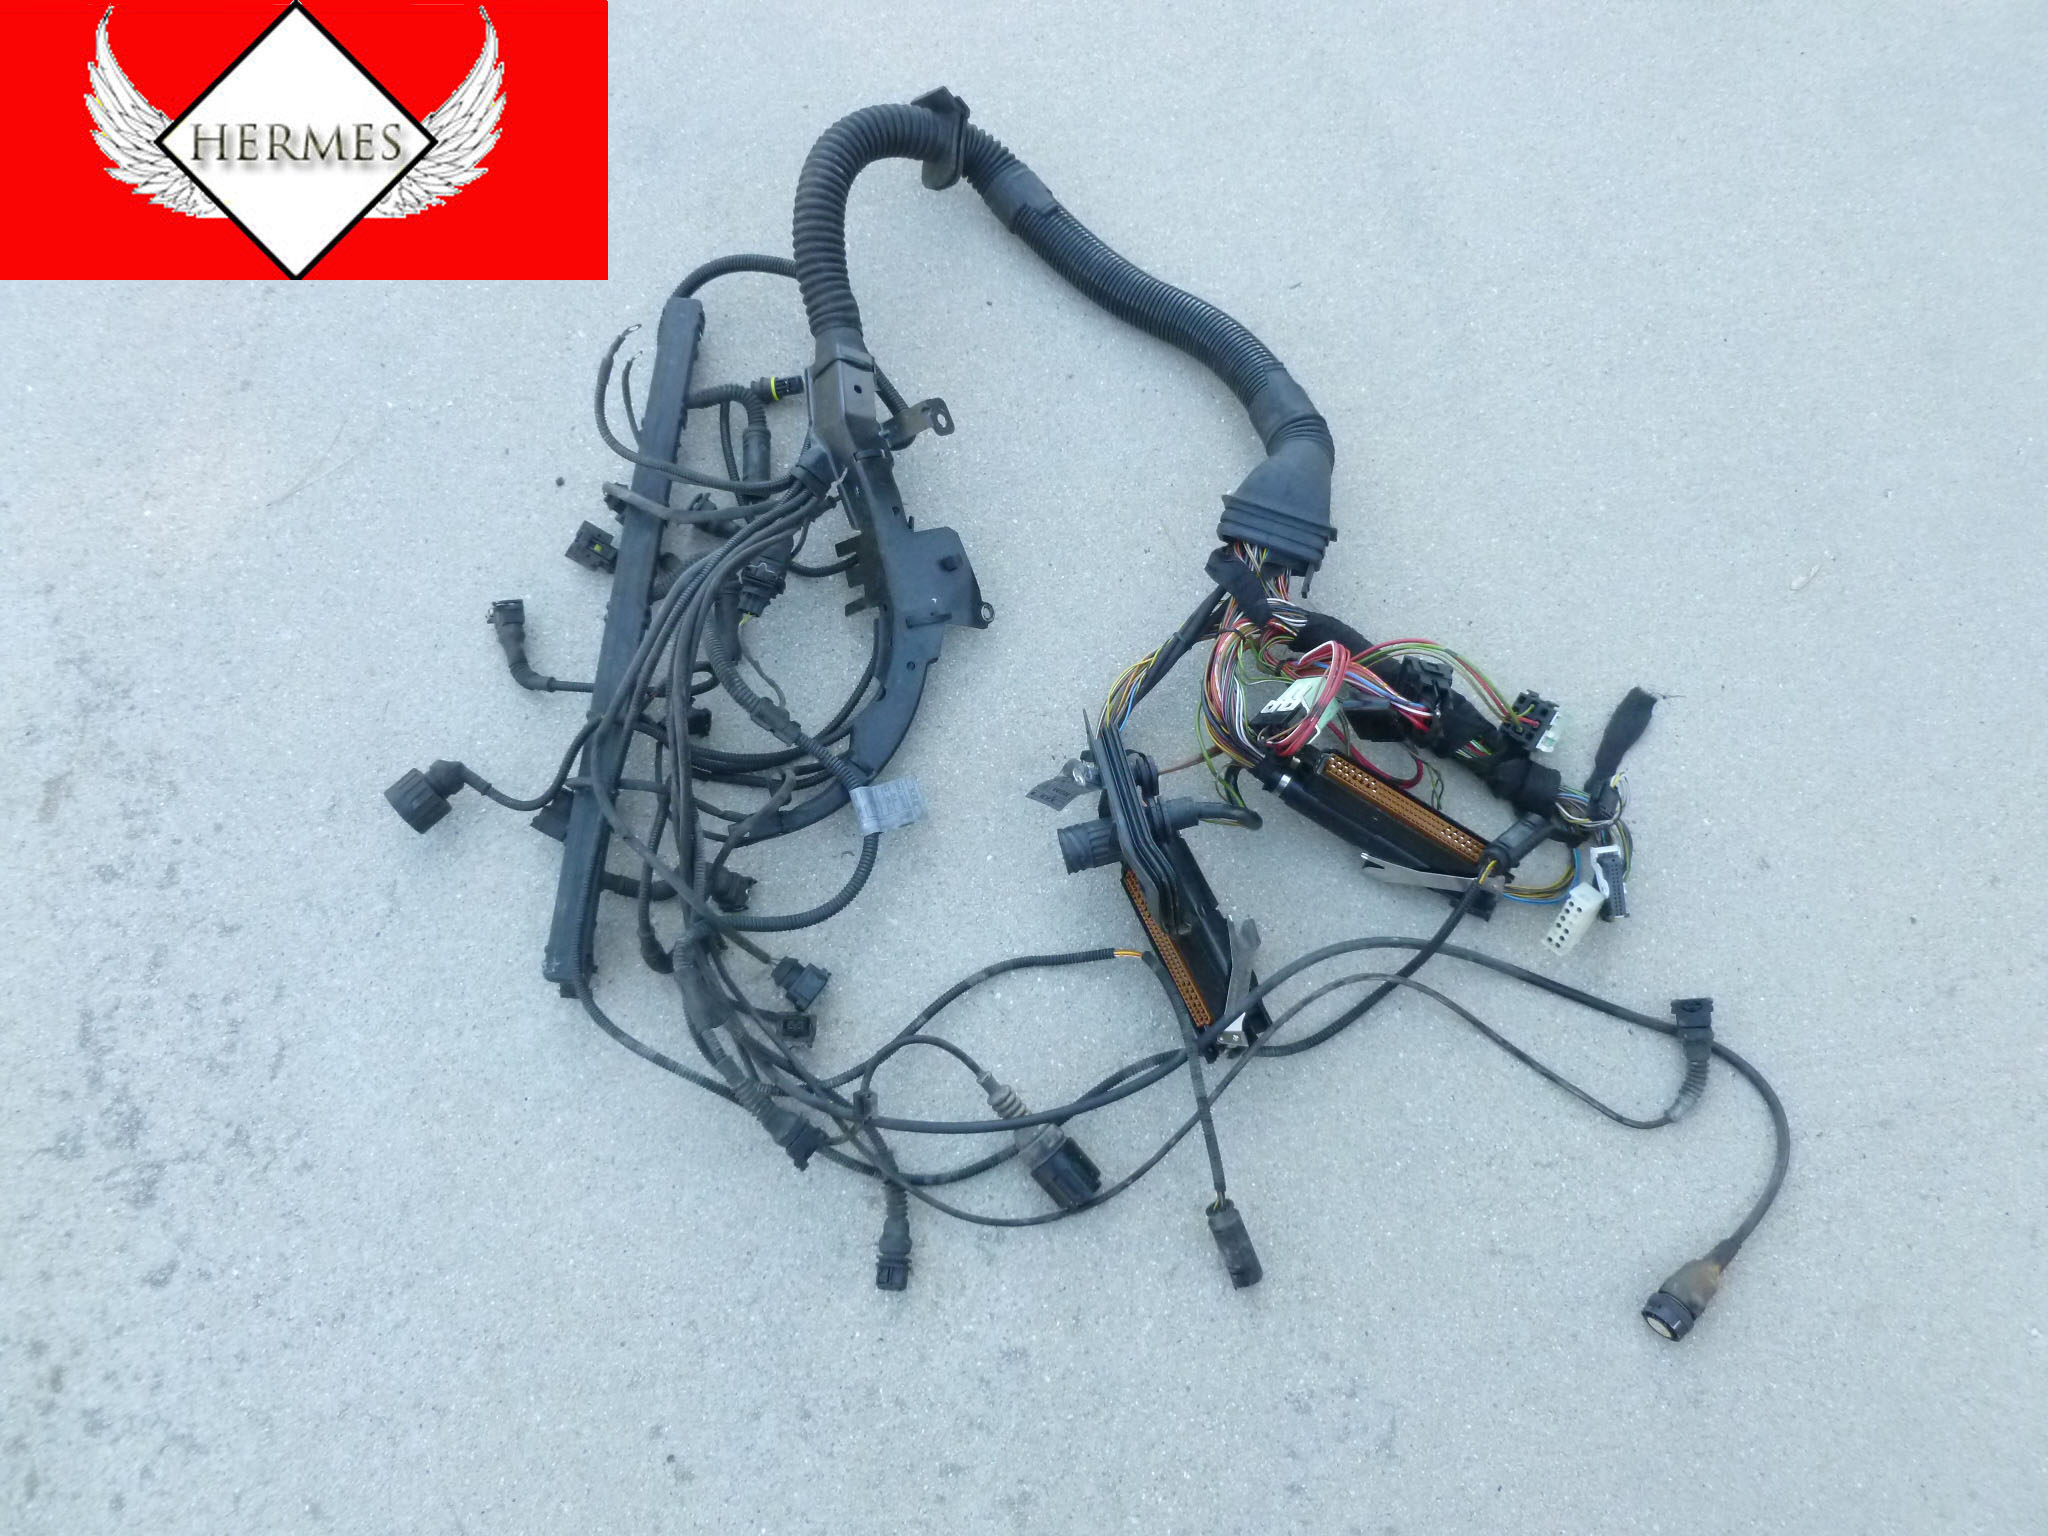 1997 BMW 528i E39 - Engine Transmission Wiring Harness 12511433361 - Hermes  Auto PartsHermes Auto Parts